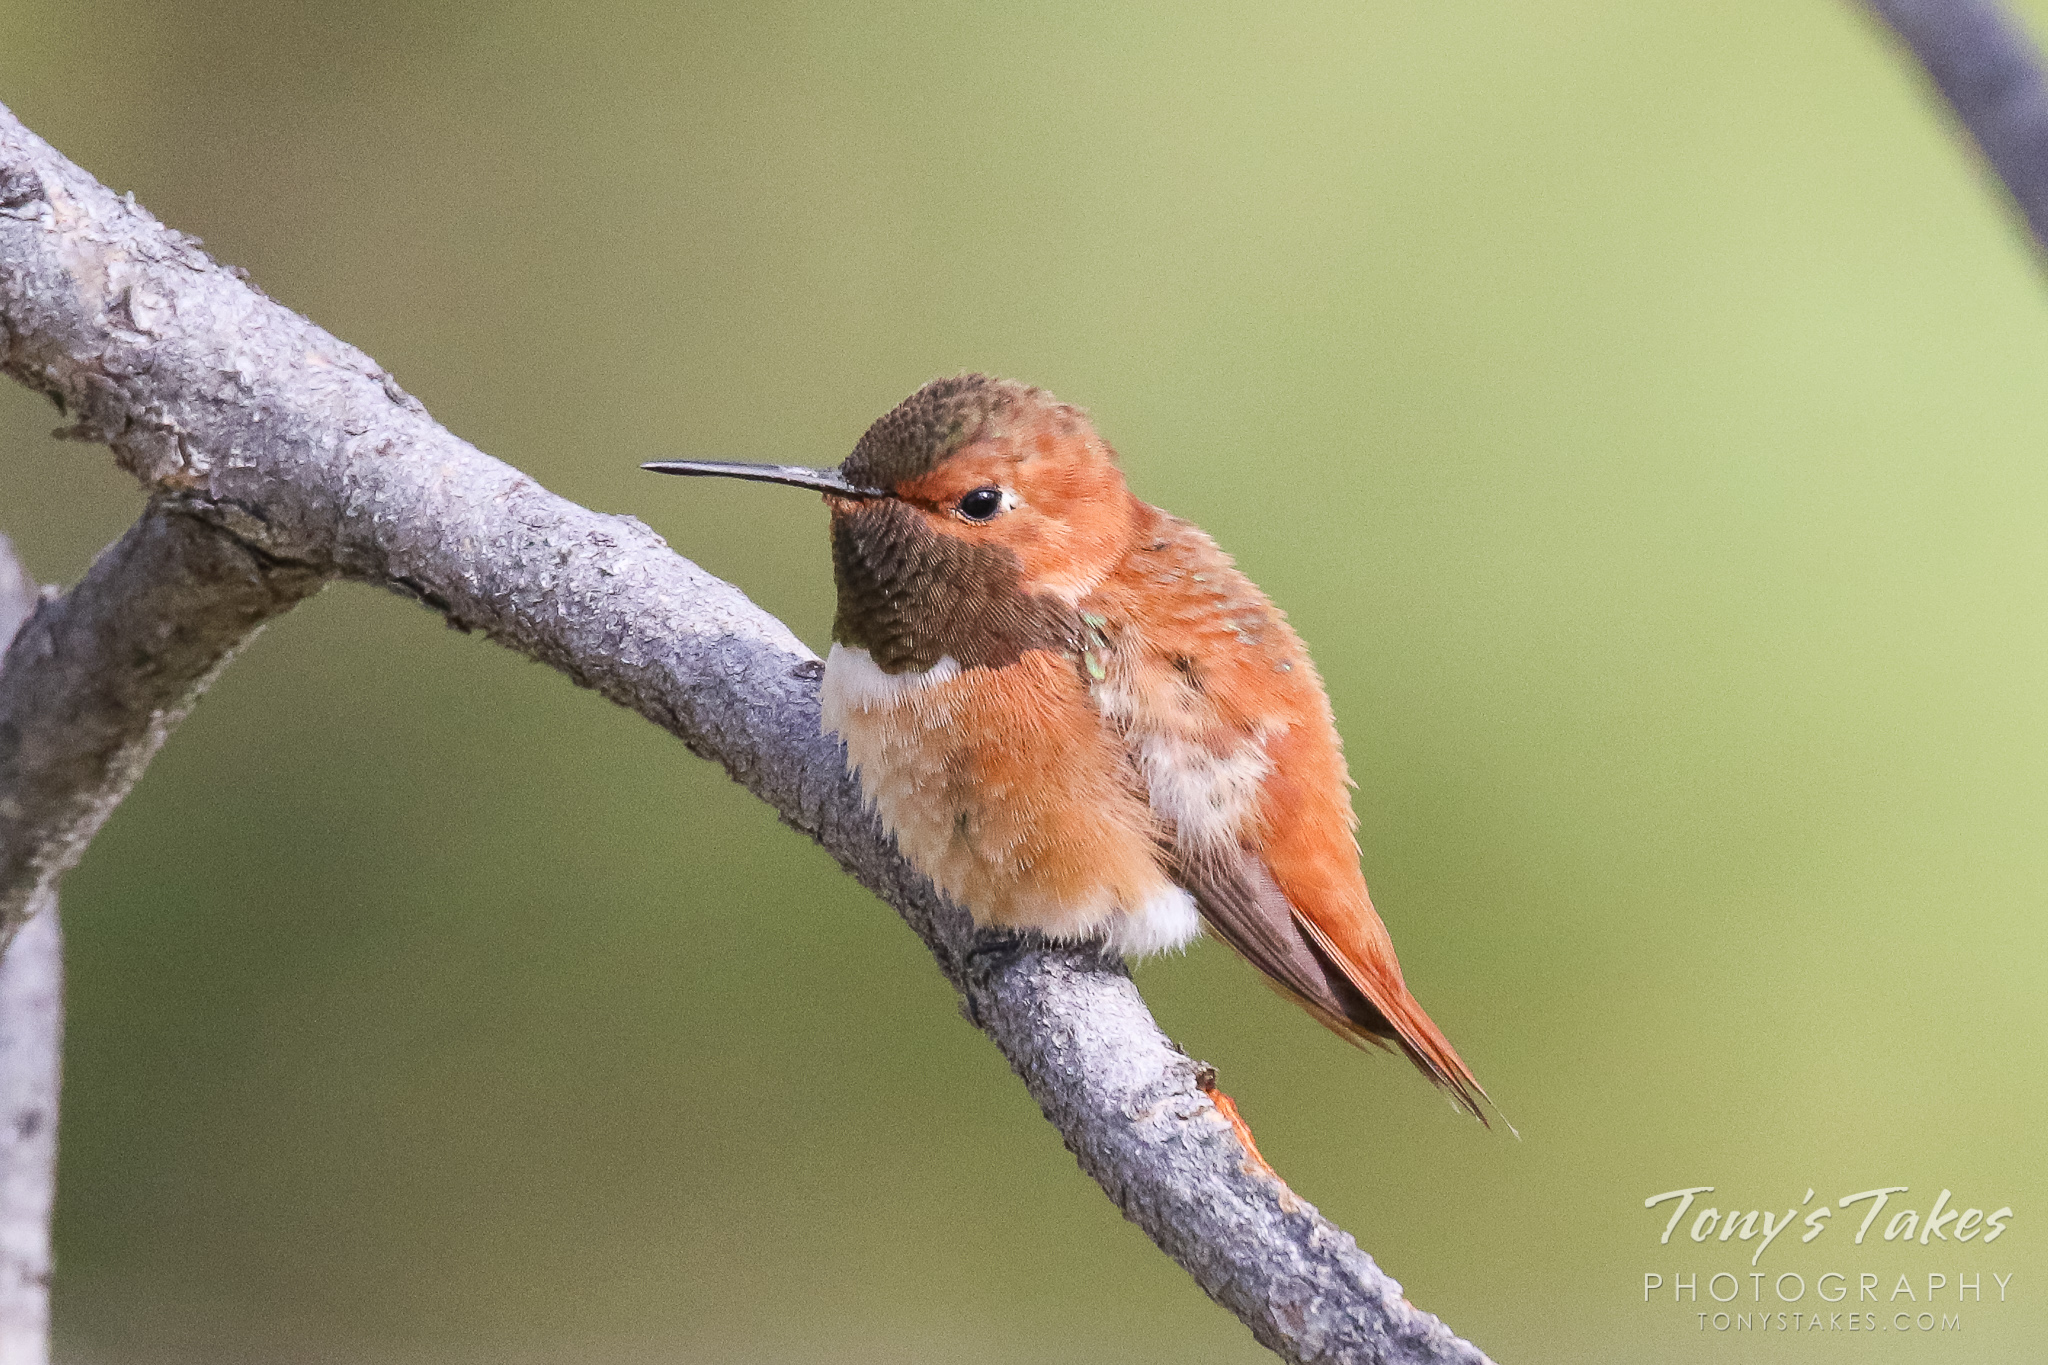 Handsome Rufous Hummingbird hangs out in the forest